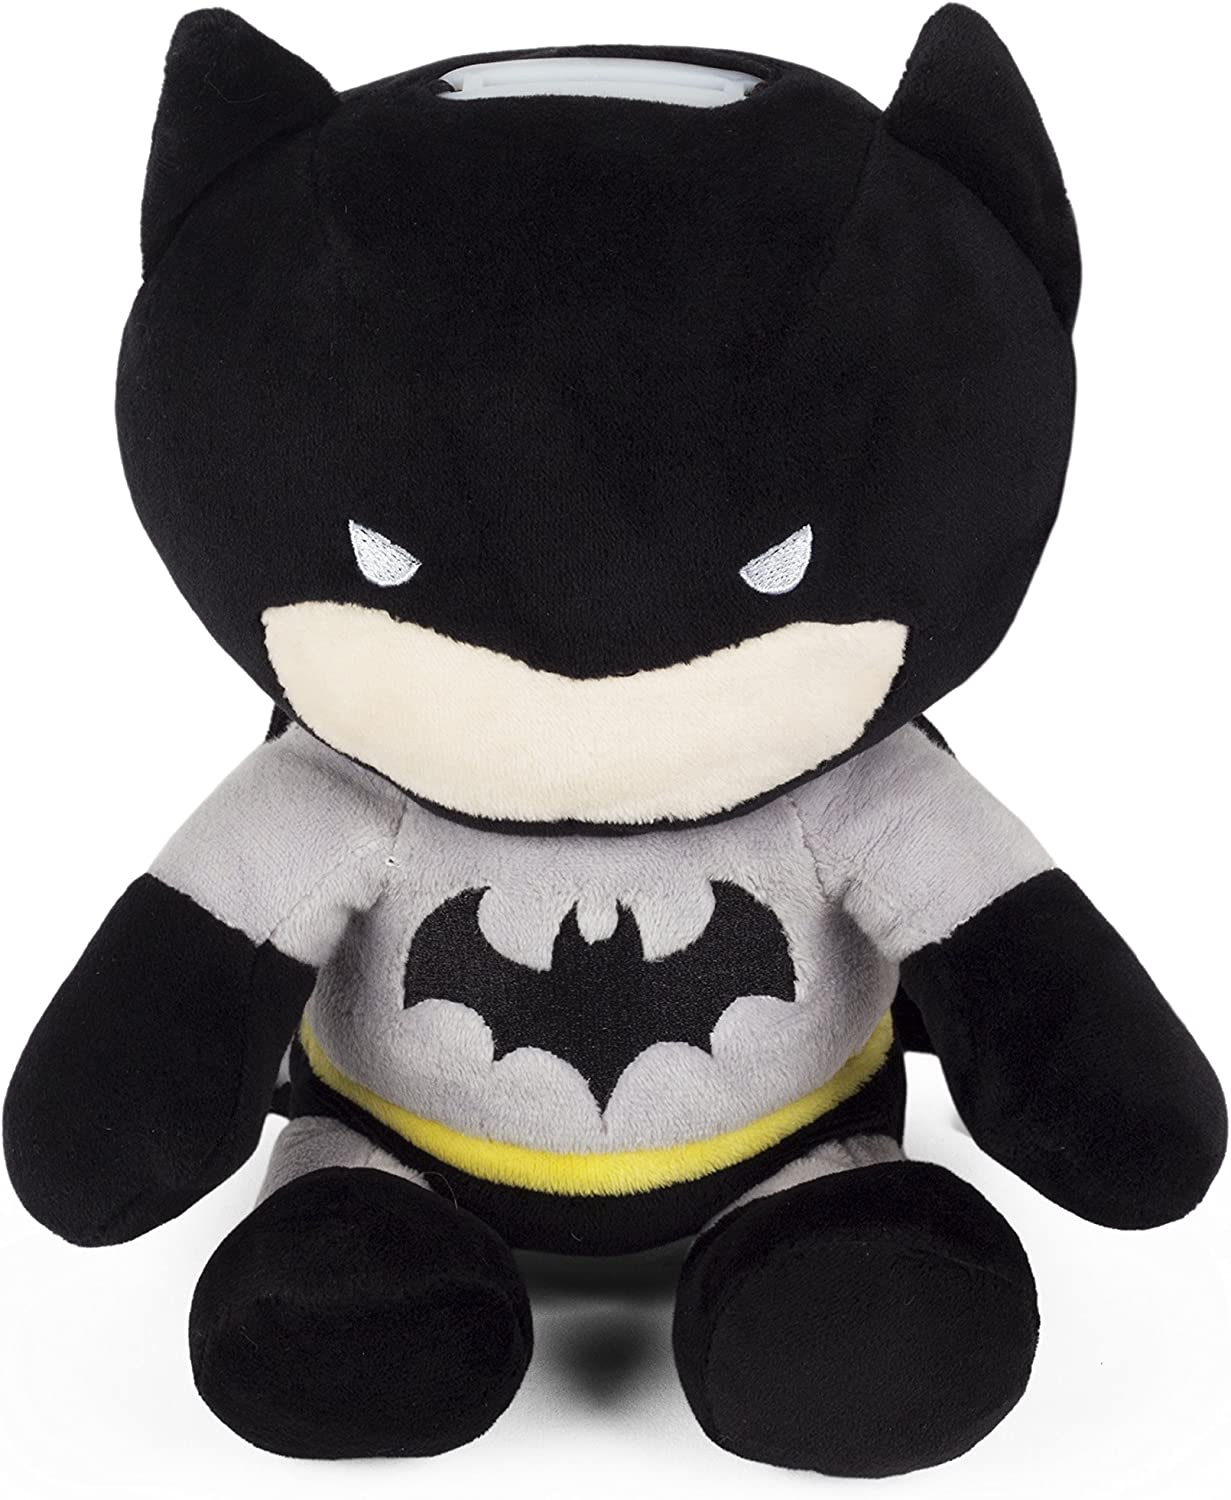 FAB Starpoint DC Comics Batman Black Plush Coin Money Bank